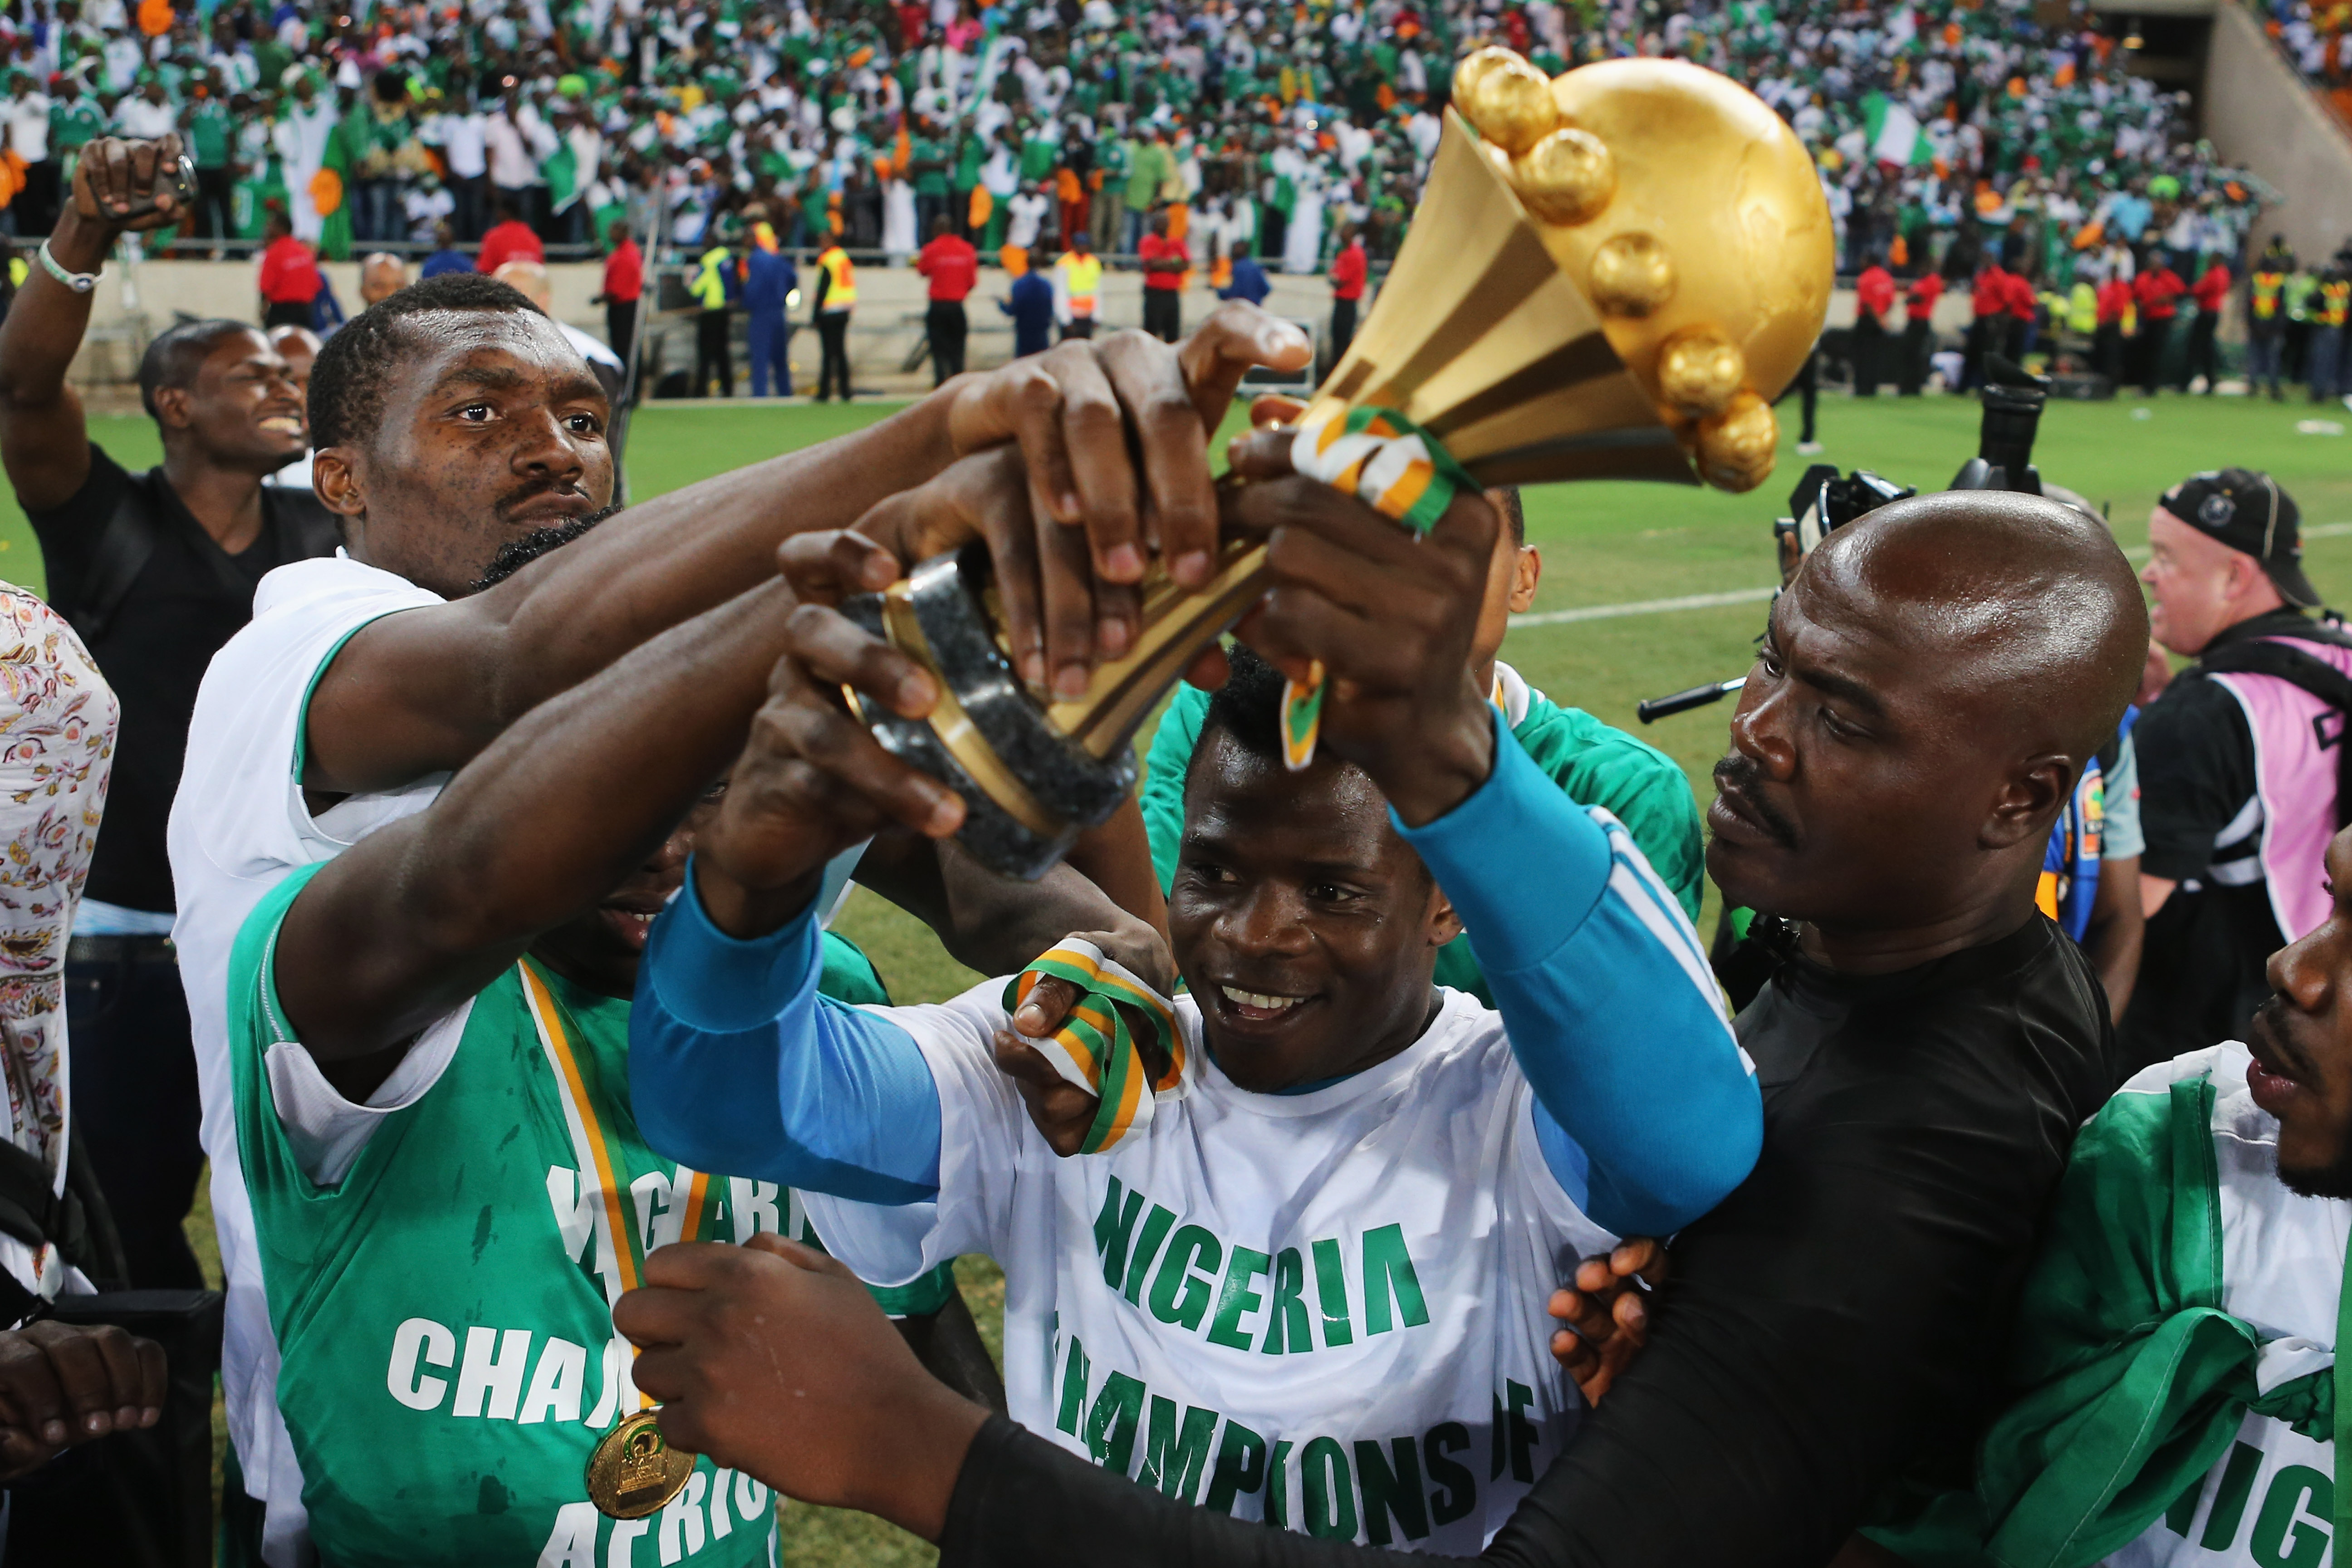 Evertonians Guide to the 2019 Africa Cup of Nations